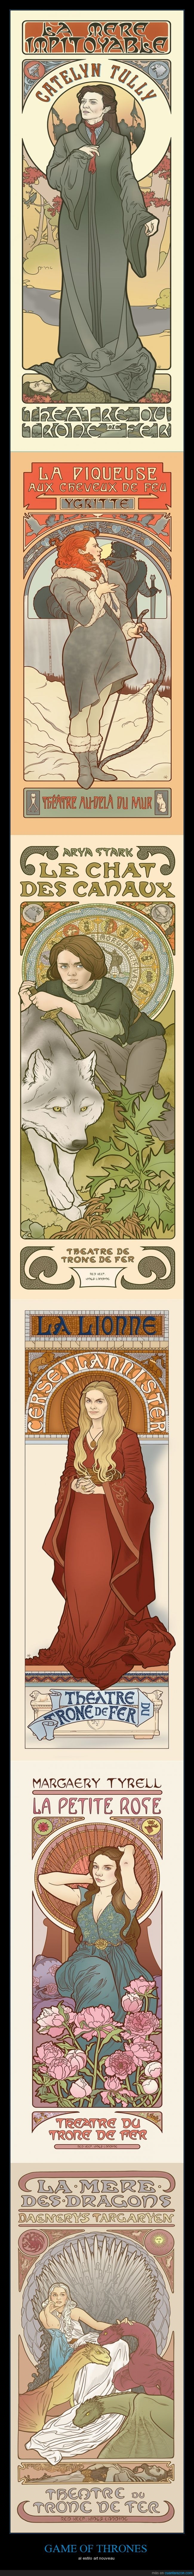 art nouveau,floreale,francés,game of thrones,juego de tronos,modernismo,vanguardia